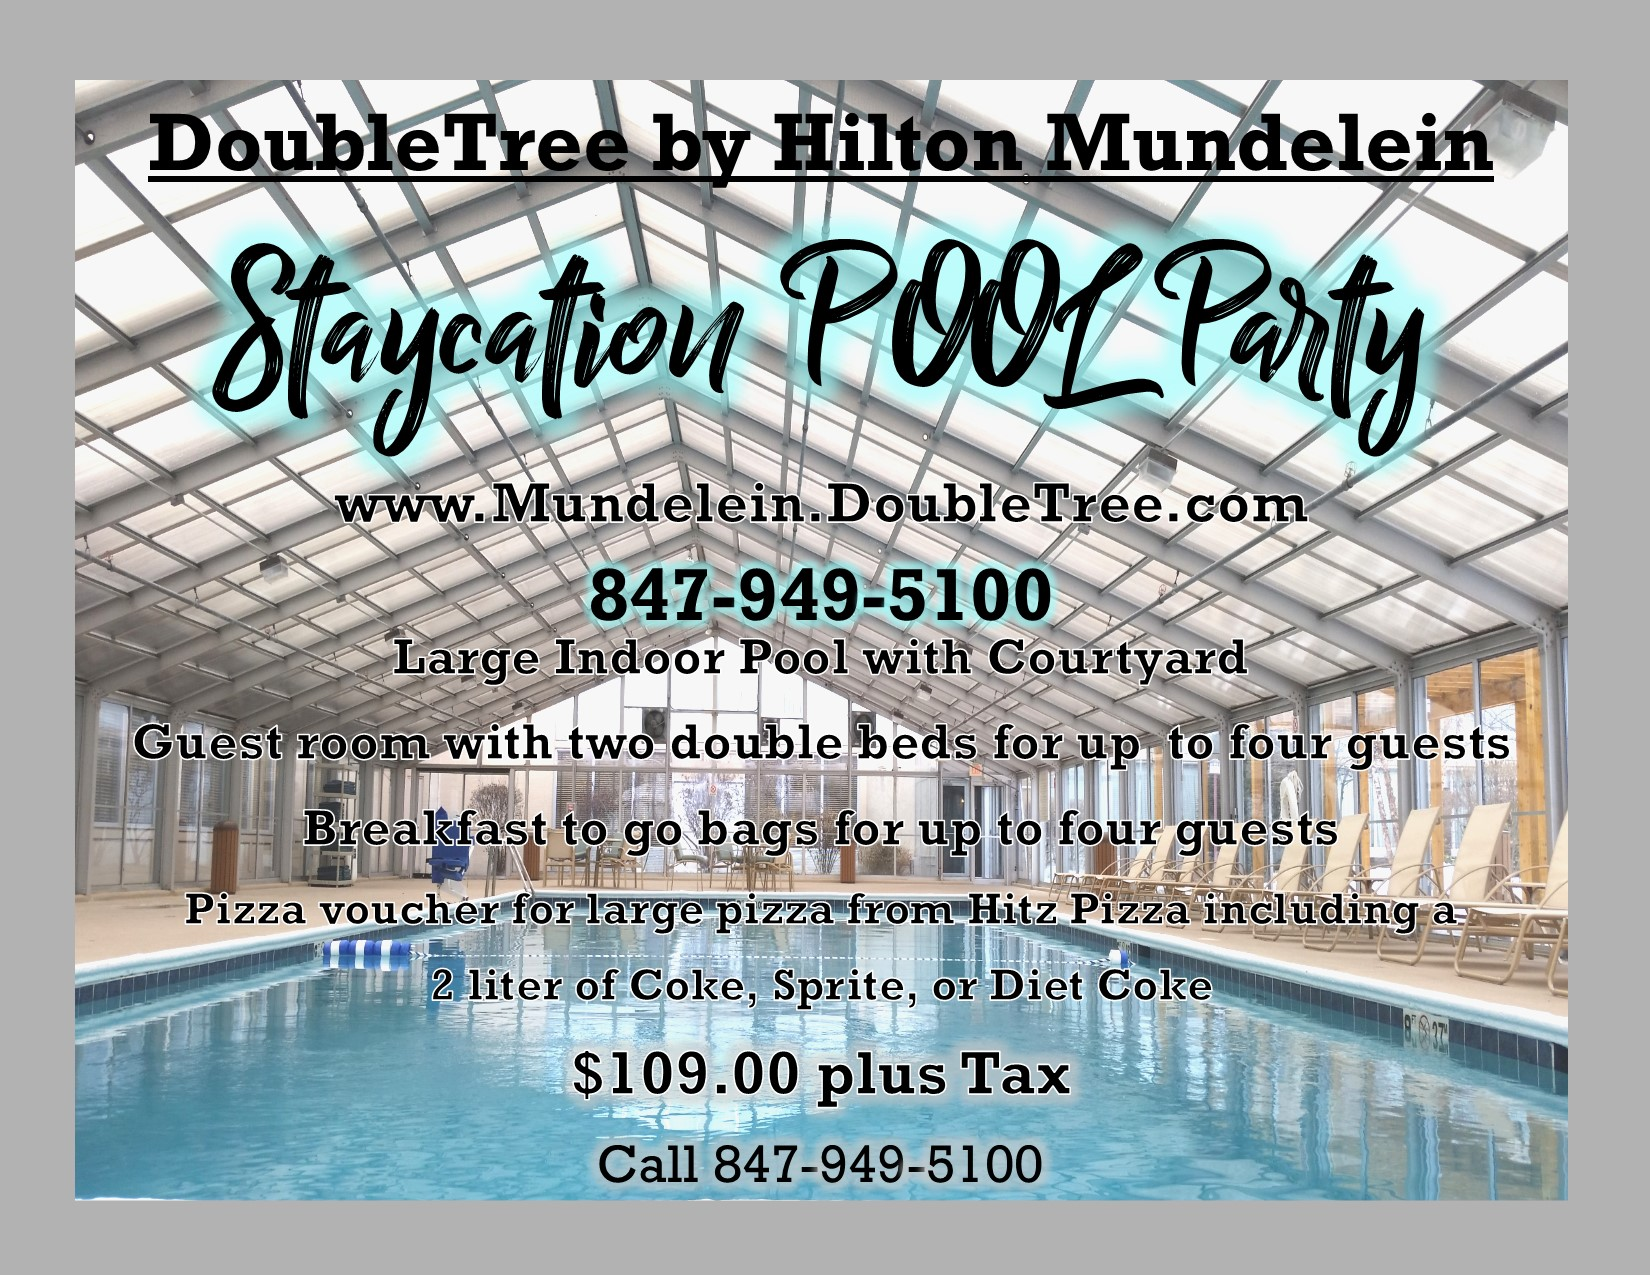 Staycation Pool Party!